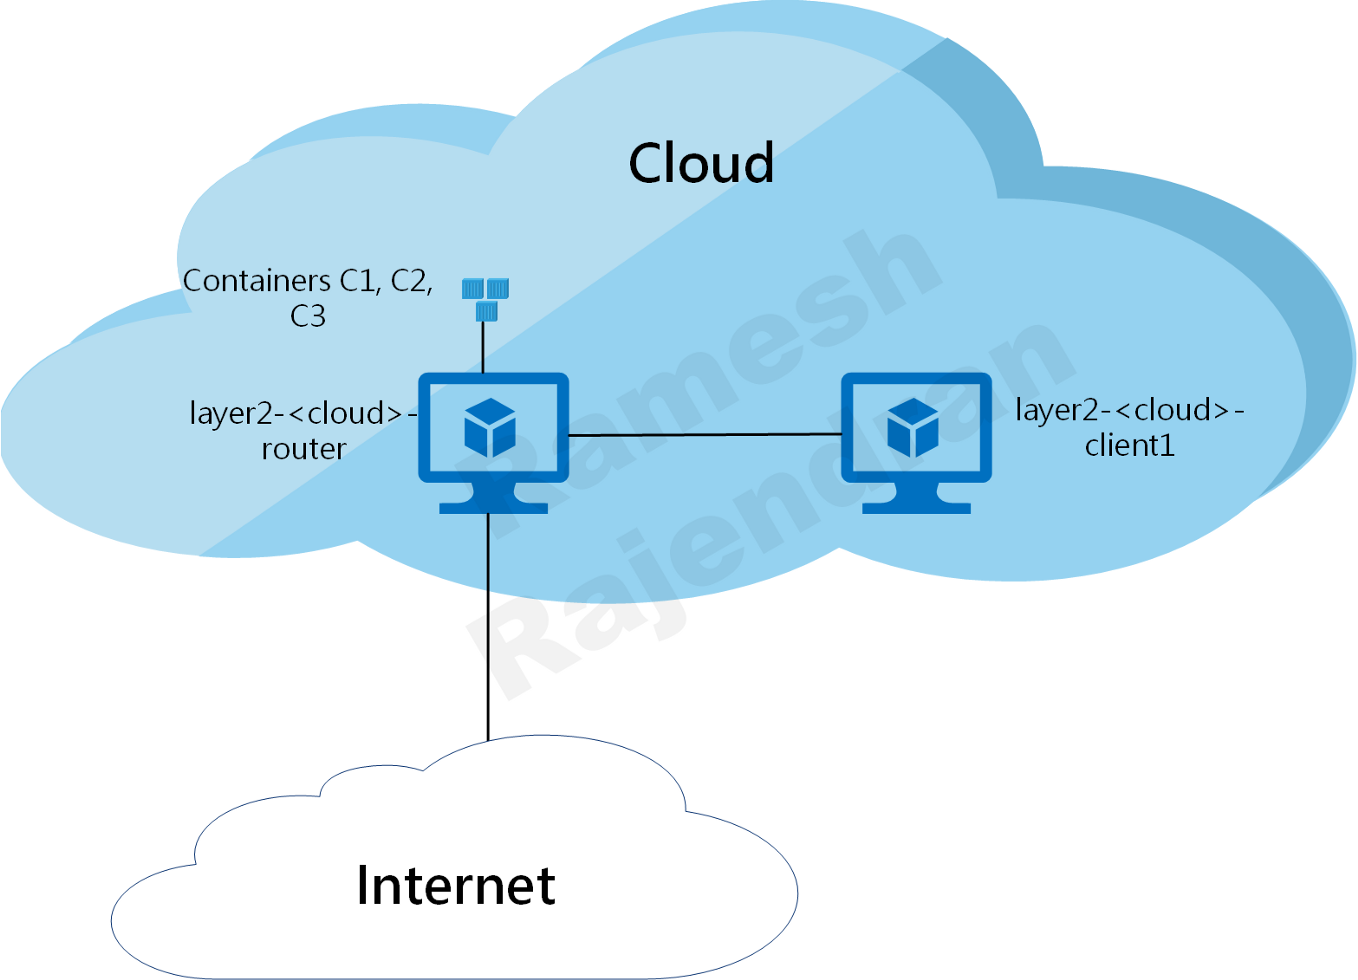 Components - Cloud